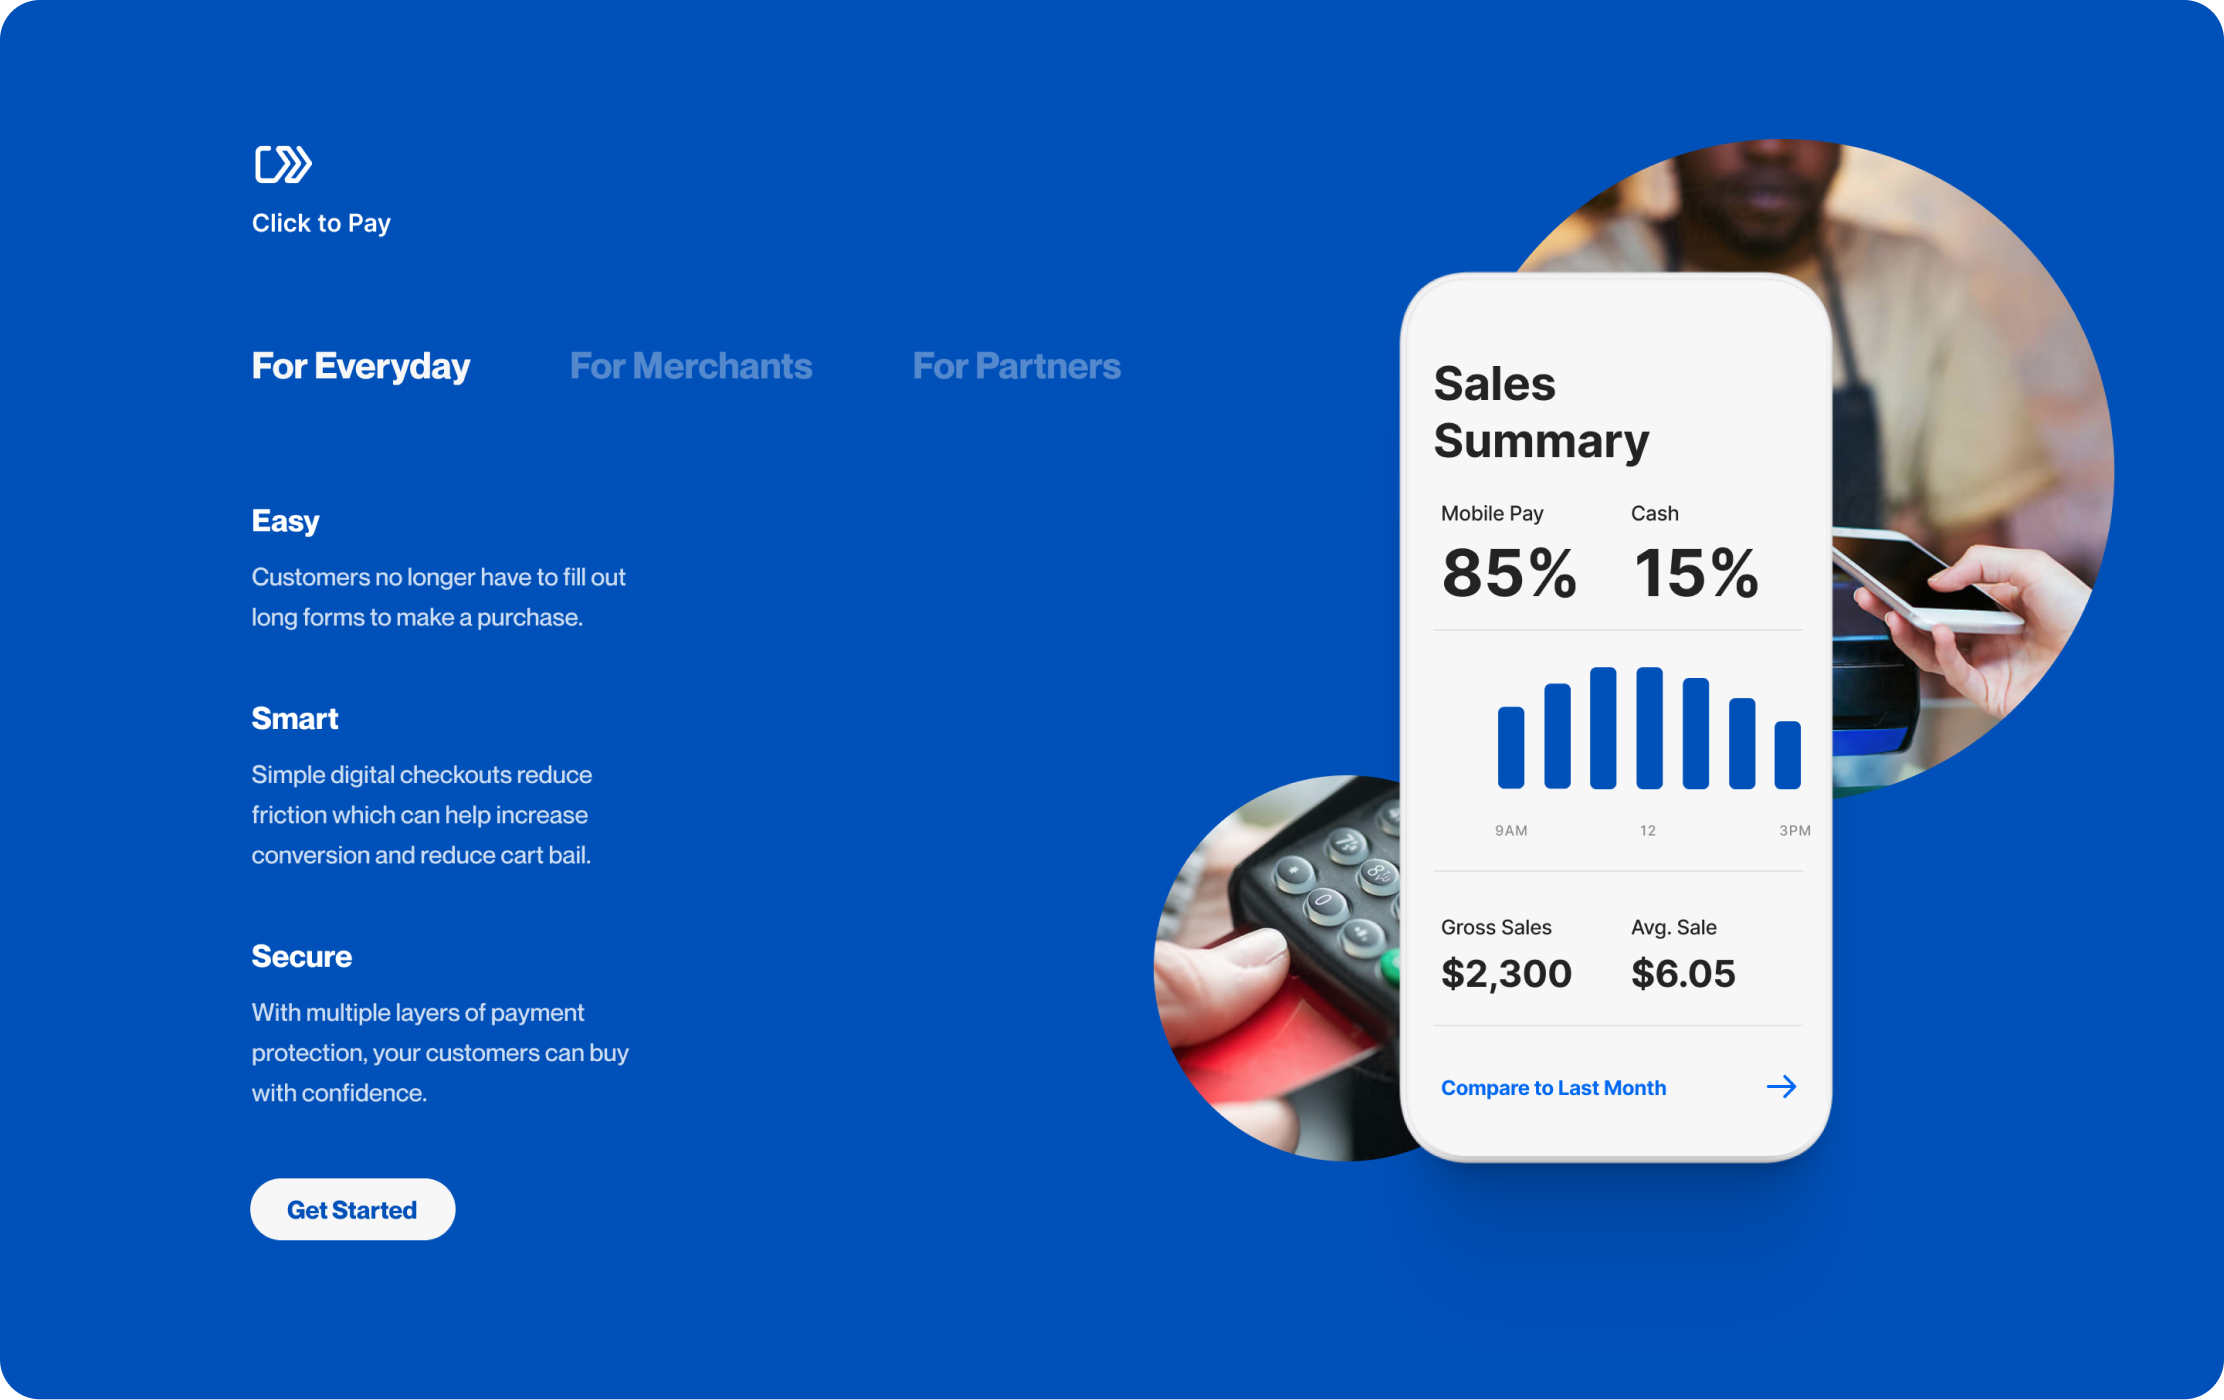 UI design of a tab selection for everyday customers, merchants or partners of Visa